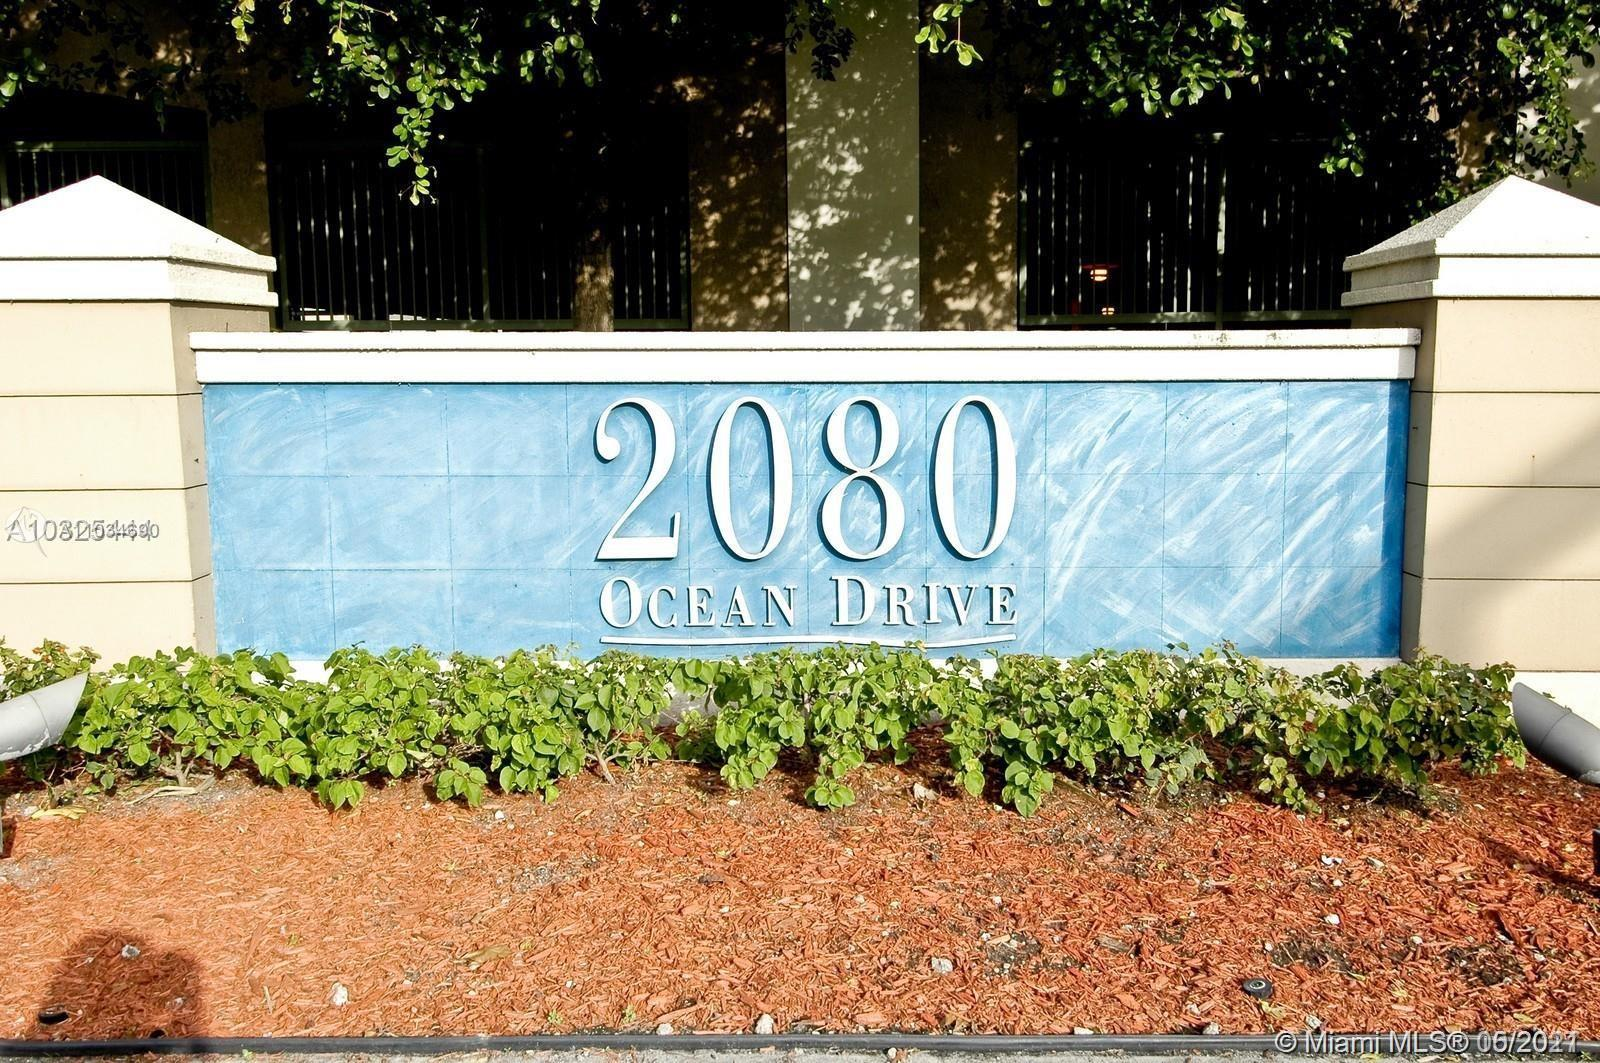 PRICED TO SELL! THE LARGEST LOWEST PRICED GREAT UNIT!! LUXURY NEWER BUILDING,2 BED 2 1/2 BATHS (NOTE